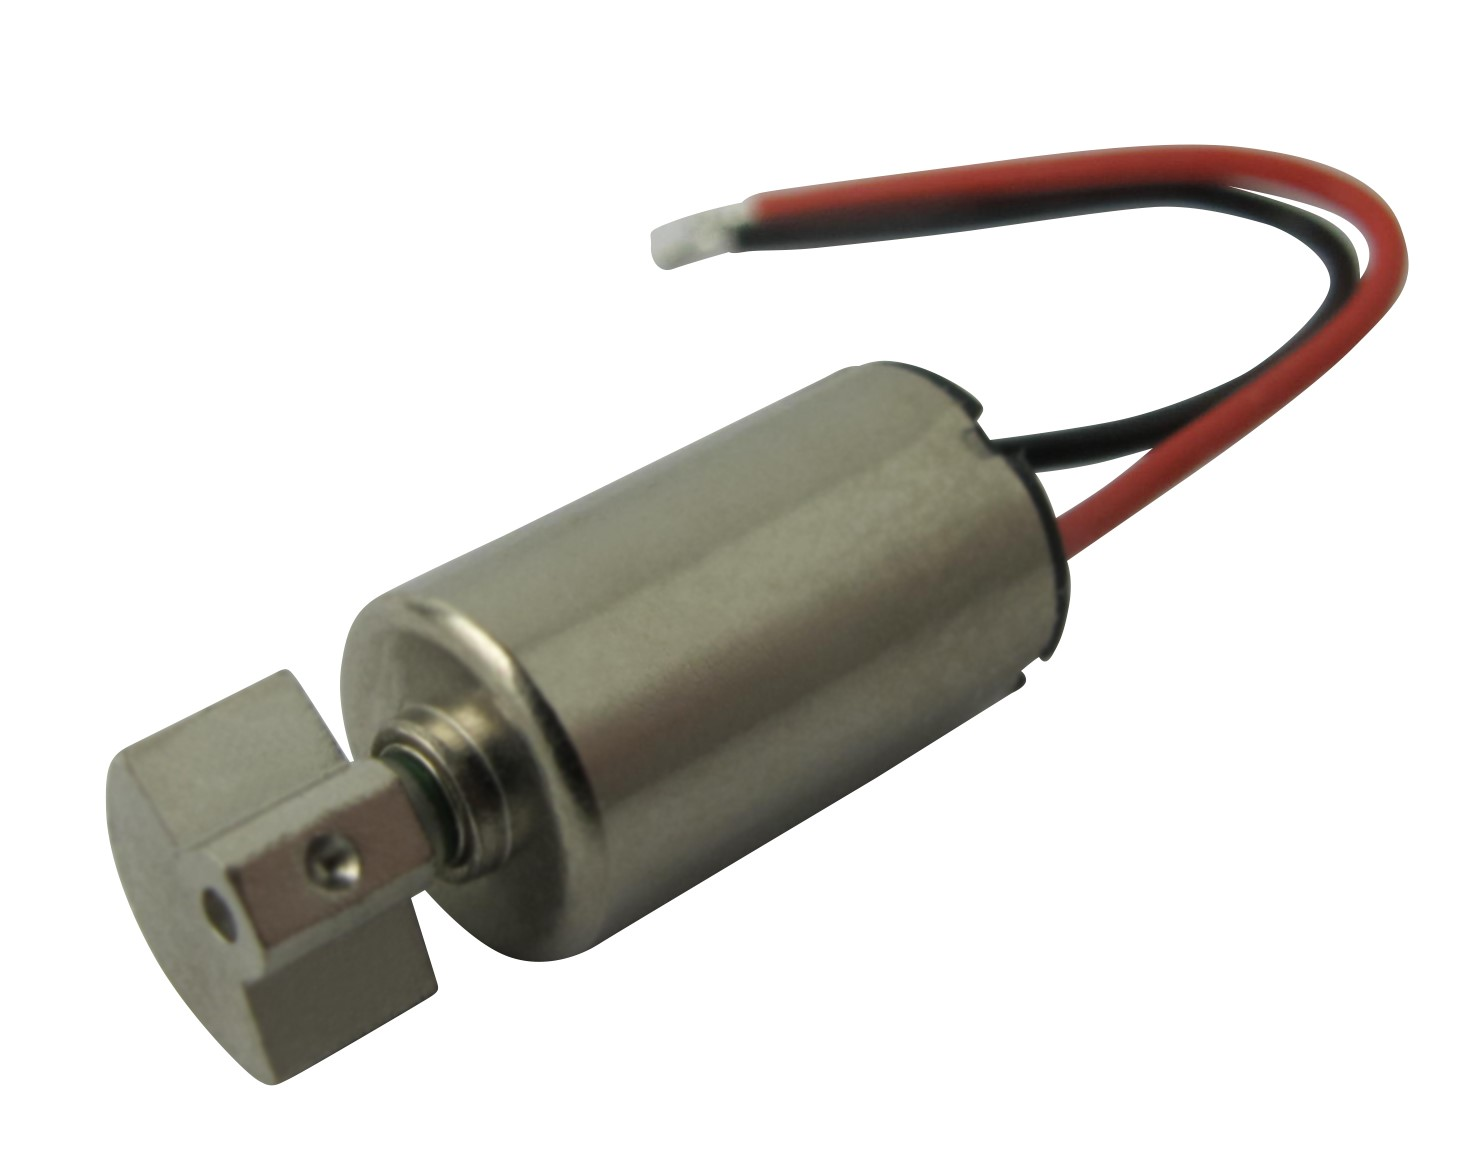 Z6SL2A0060001 Wire Leads Cylindrical Vibration Motor